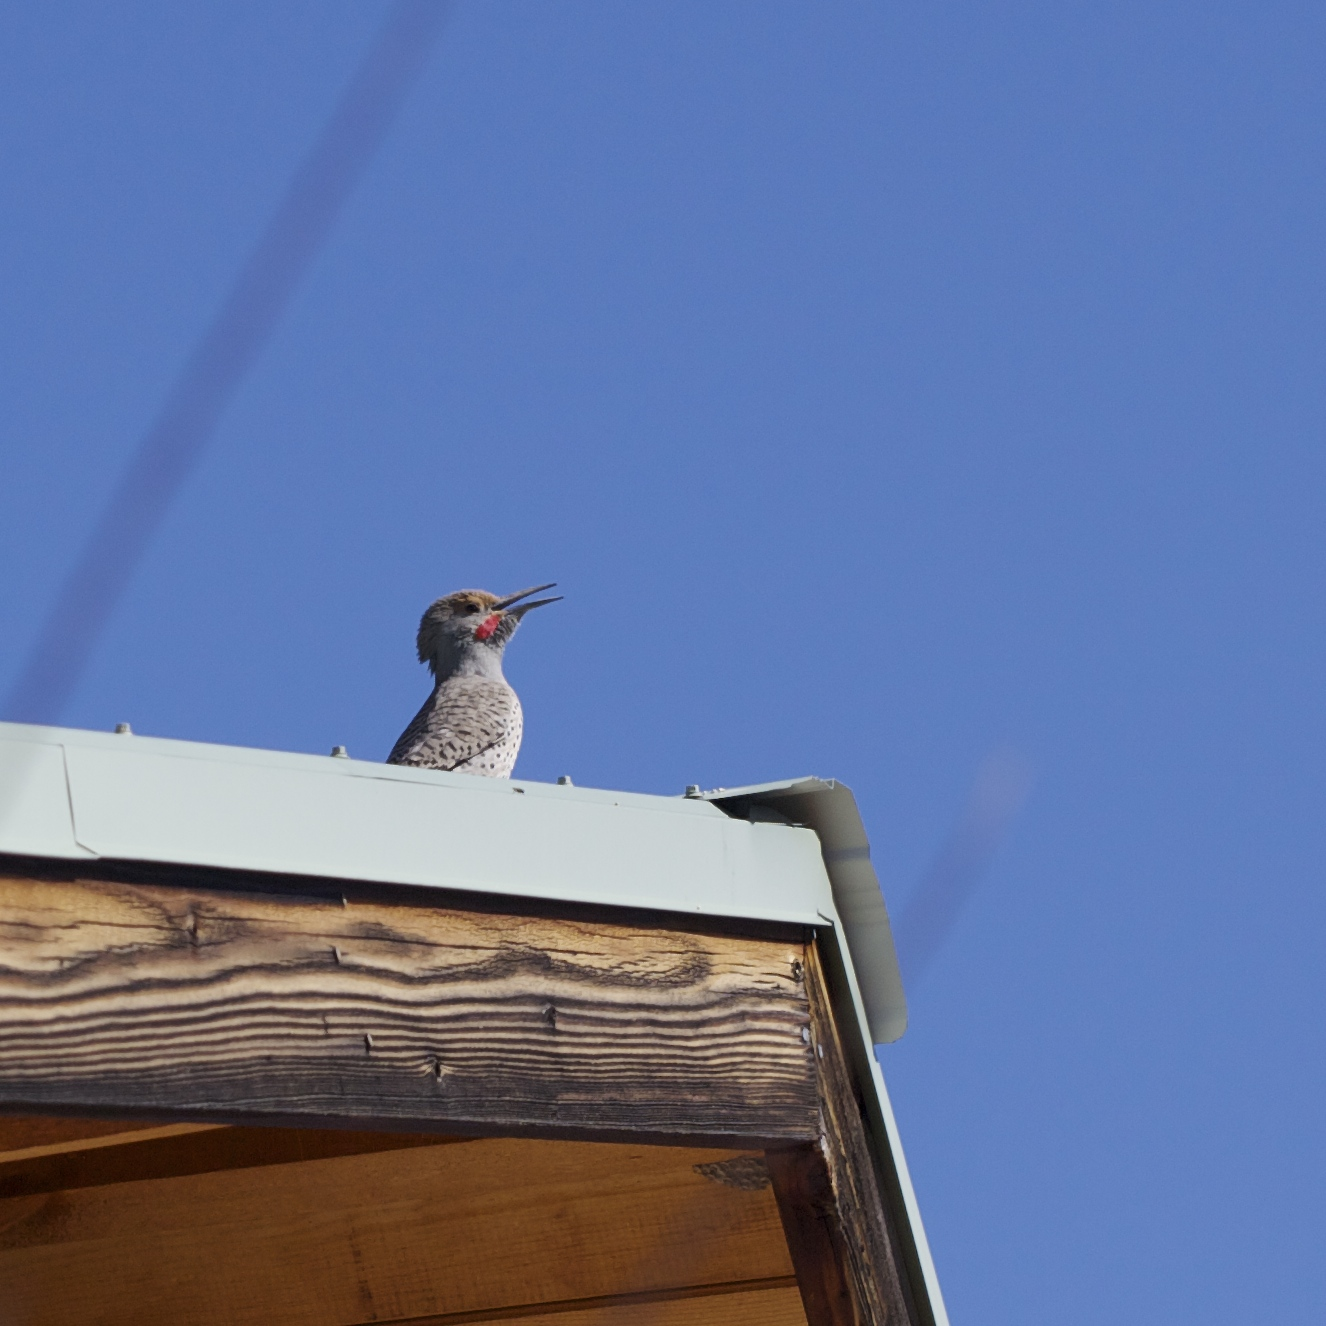 Each morning for weeks this flicker has greeted me, drumming on the roof cap and shrilling to the sky, calling for a mate, claiming his terrain. Oddly, the first time I heard him drilling on the roof, it put me right to sleep. I'd been tossing and turning, then recognized that startling staccato. It somehow signaled some security, and my body just let go, softened into the sheets, and fell back to sleep.